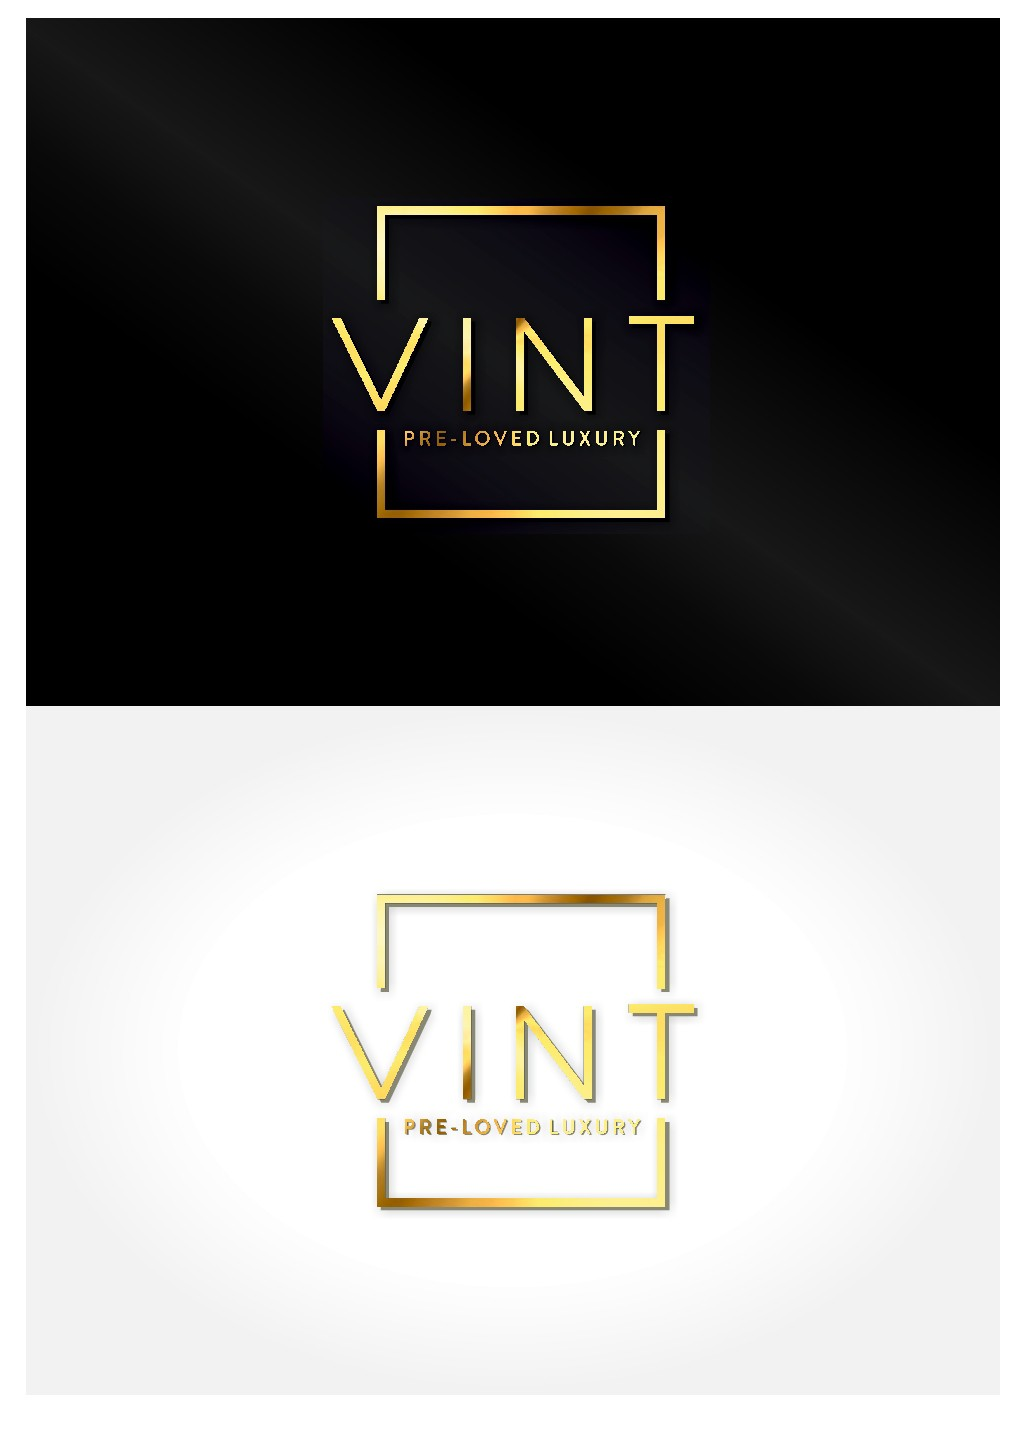 Design edgy logo for VINT!  A company that sells preowned luxury designer handbags and accessories